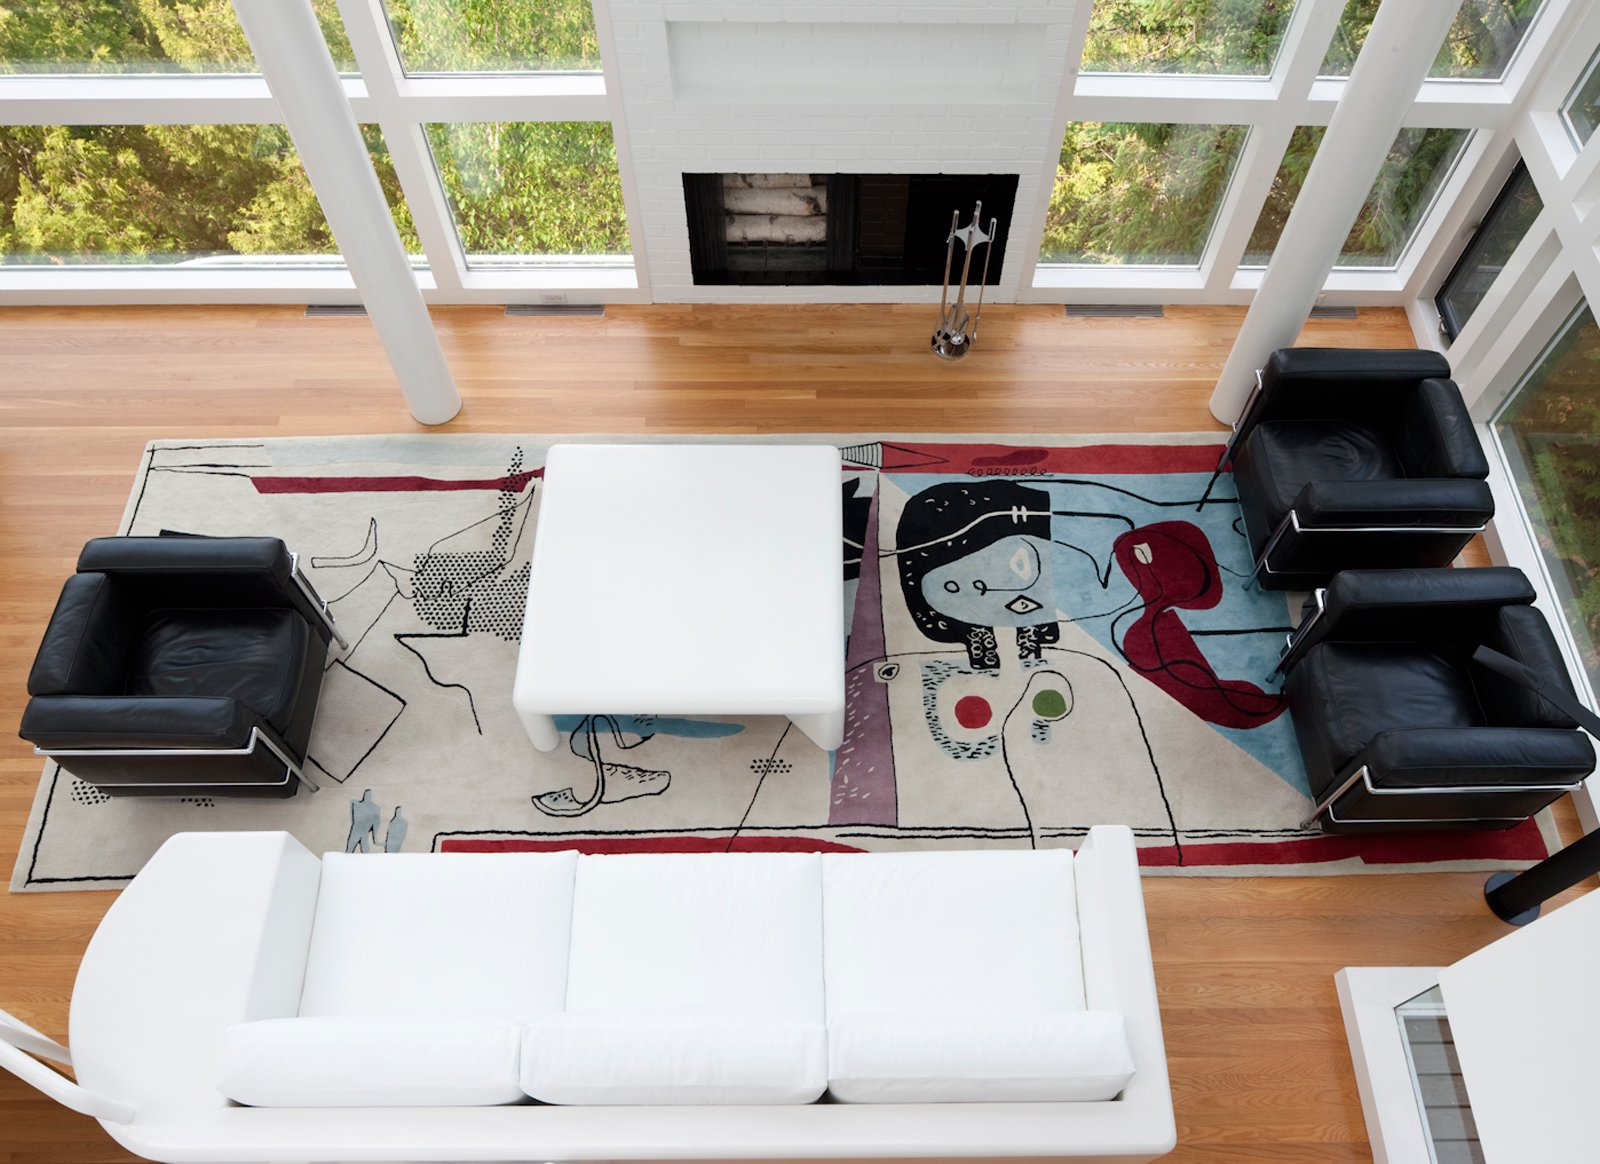 The view overlooking the living room, which features the famous Le Corbusier rug by Edward Fields. The residents were also careful to save the sofa, which Meier himself designed for the space.  How to Frame Space With a Graphic Rug by Aileen Kwun from This Lake House Is a Living Piece of Architecture History